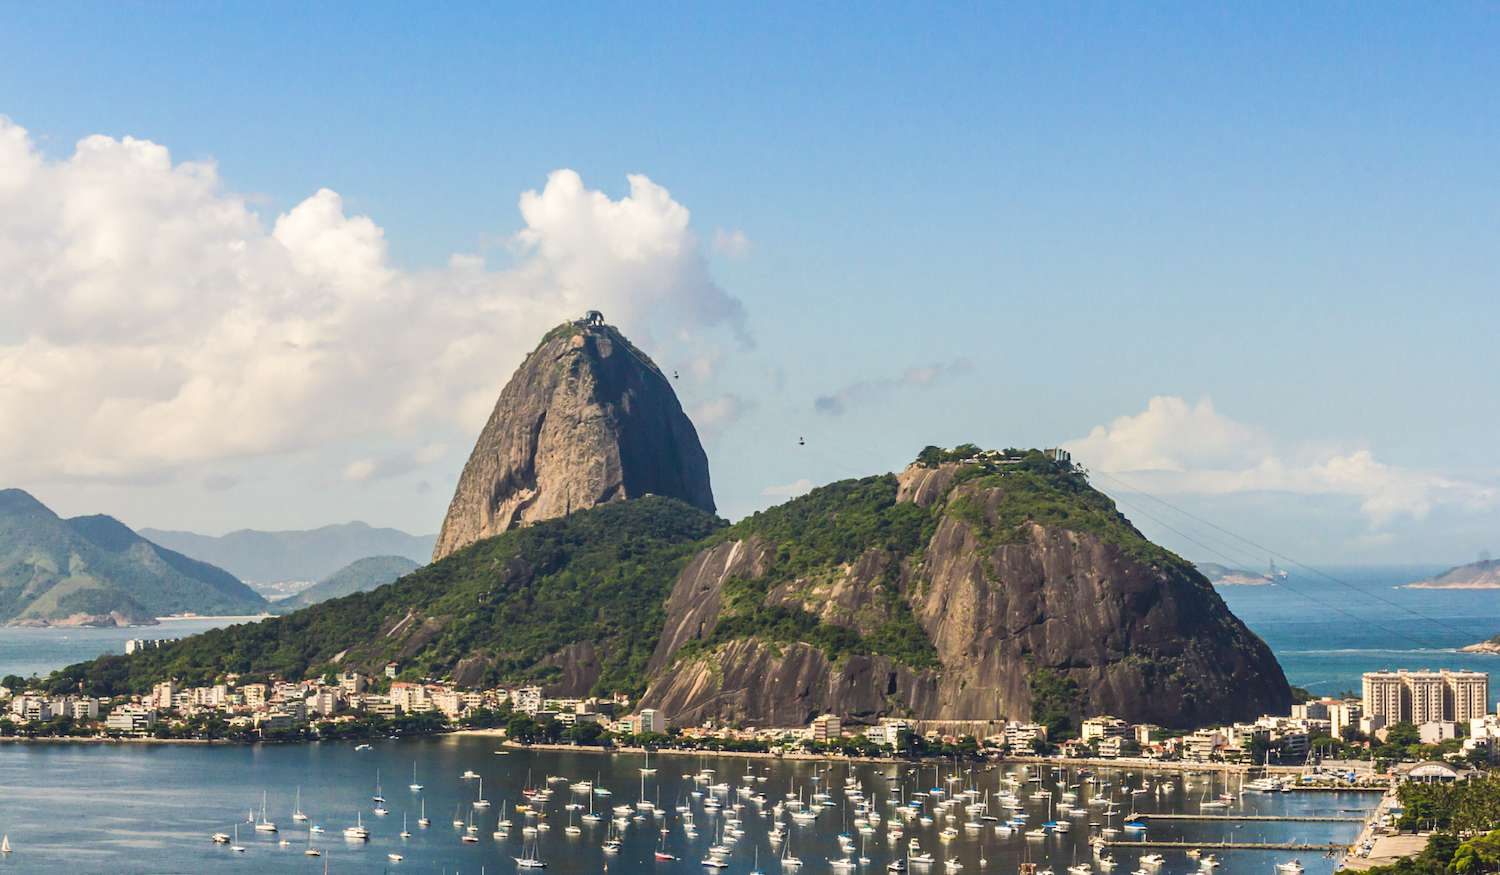 Sugarloaf Mountain looms over the sailboats in Guanabara Bay